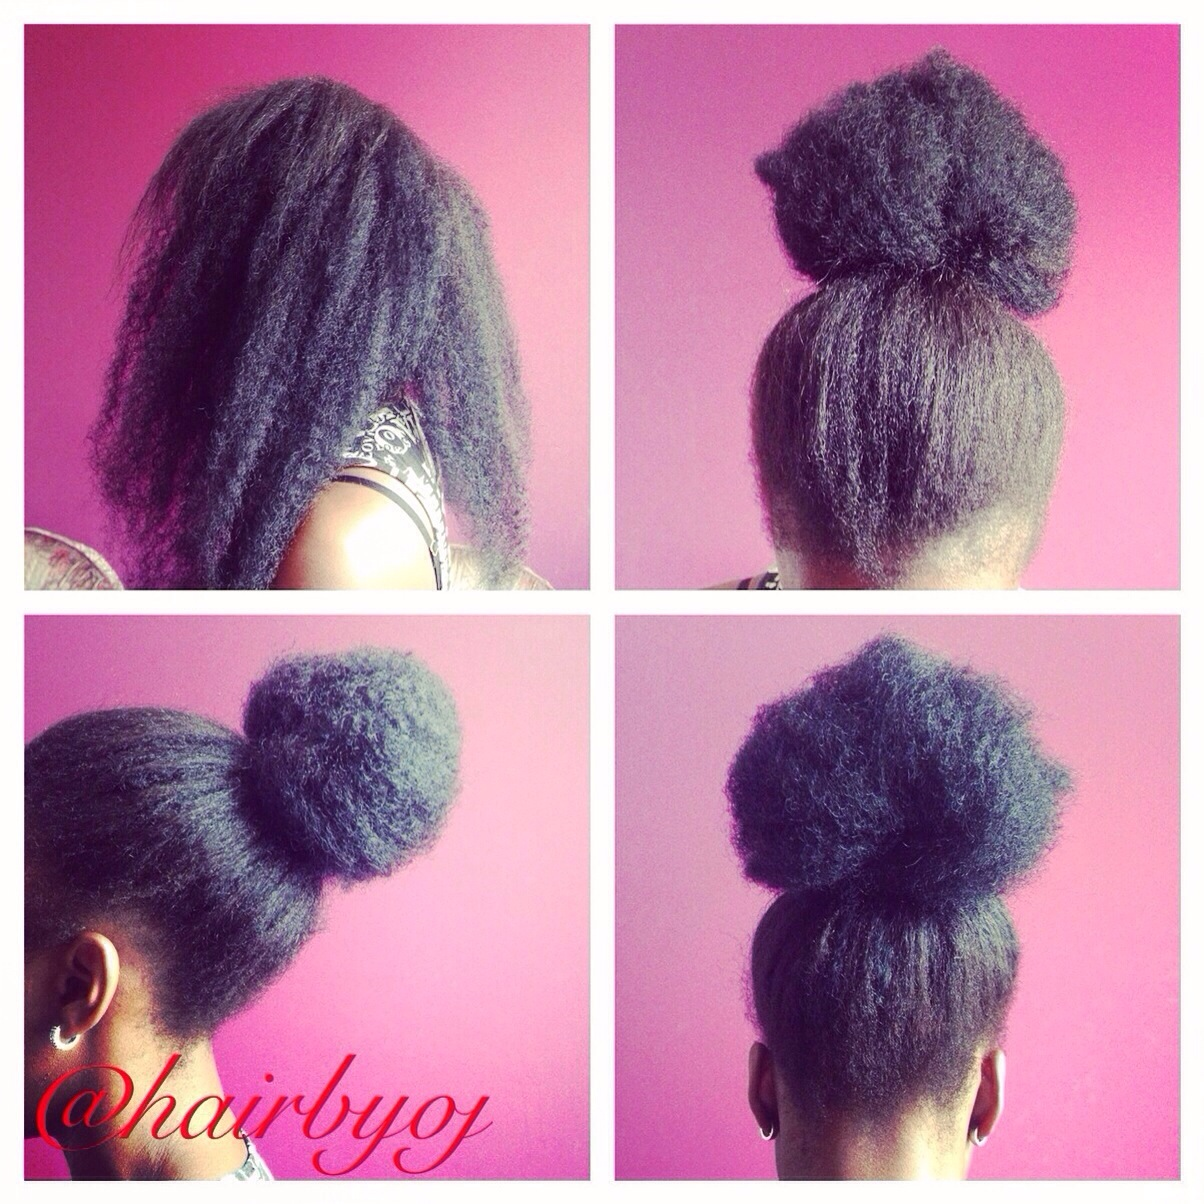 Crochet Hair Leave Out : email hairbyoj @ outlook com instagram hairbyoj twitter @ hairbyoj